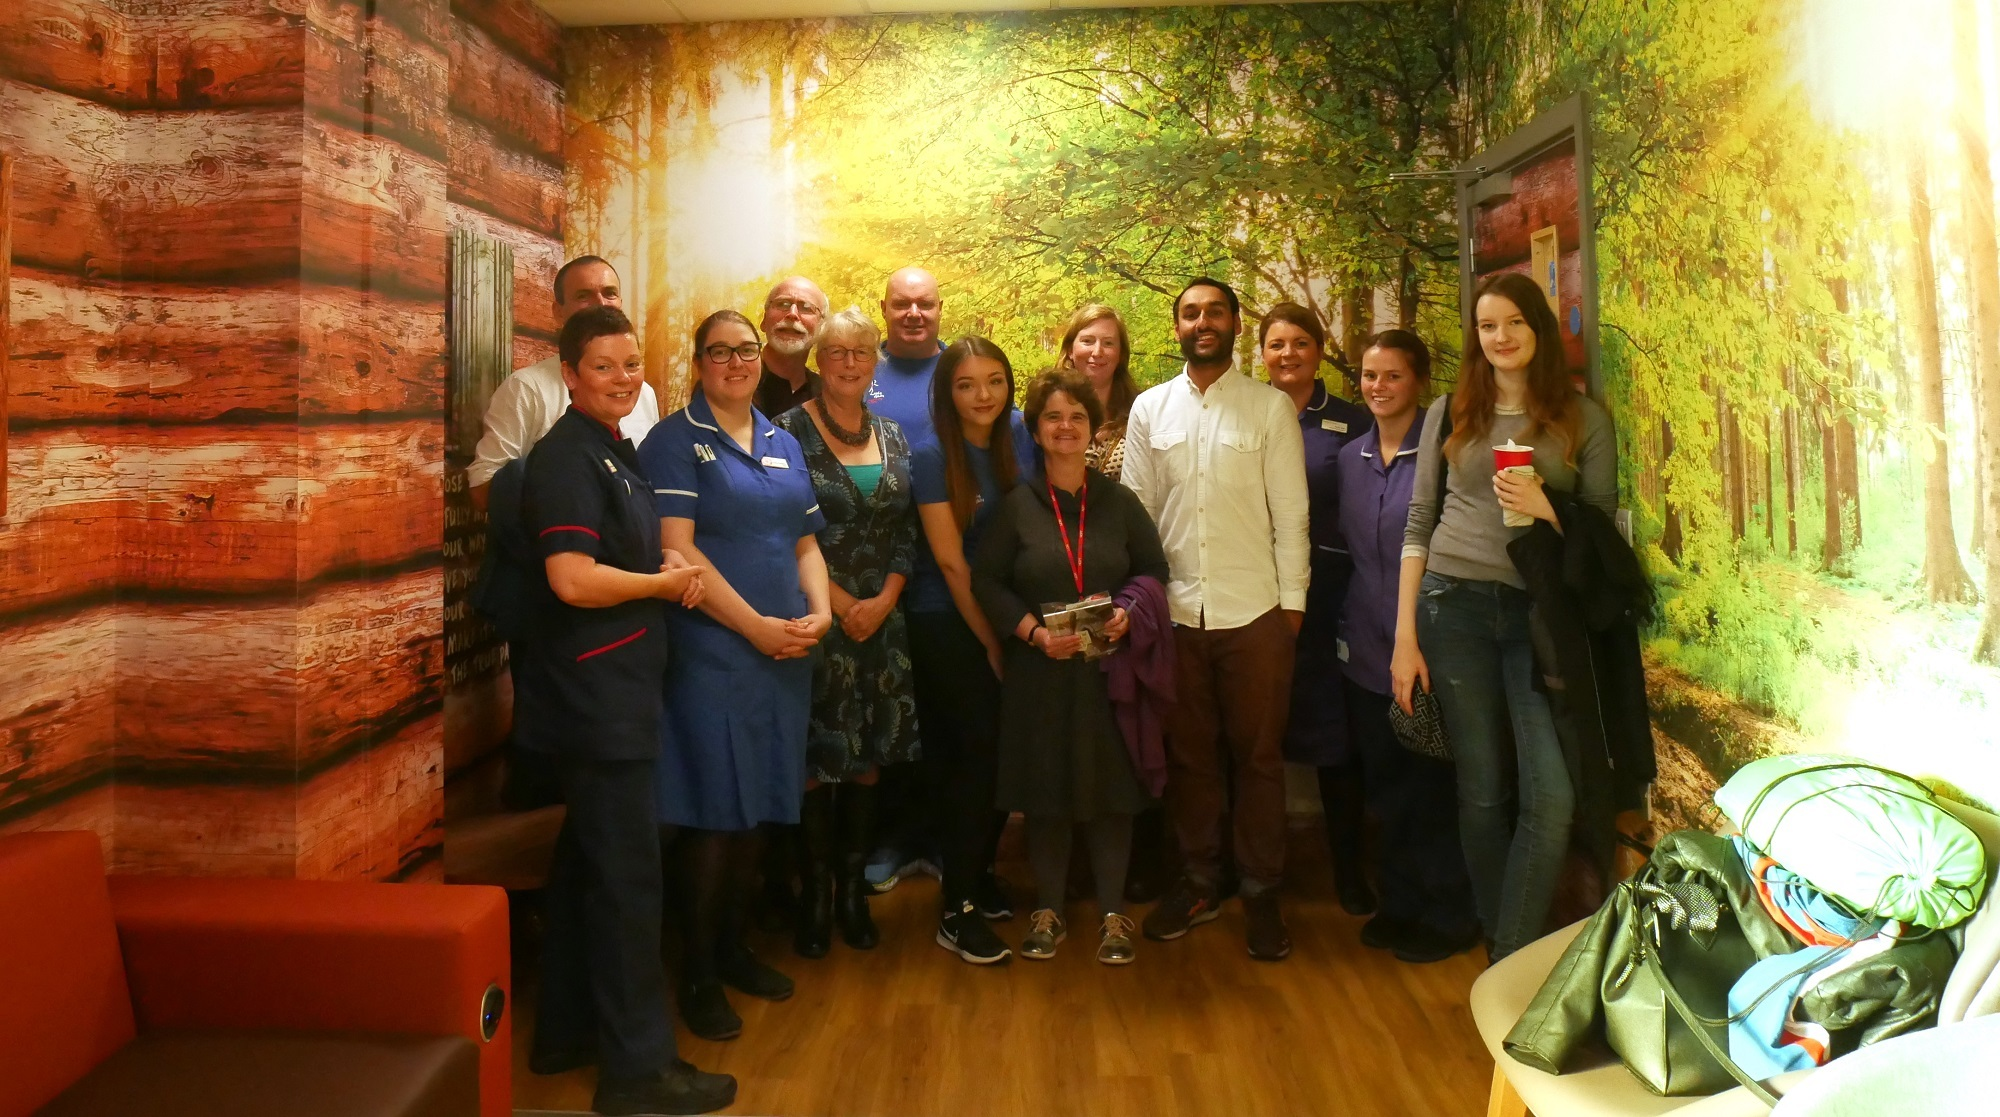 Staff and patients at the opening of The Cabin at Leeds Liver Unit